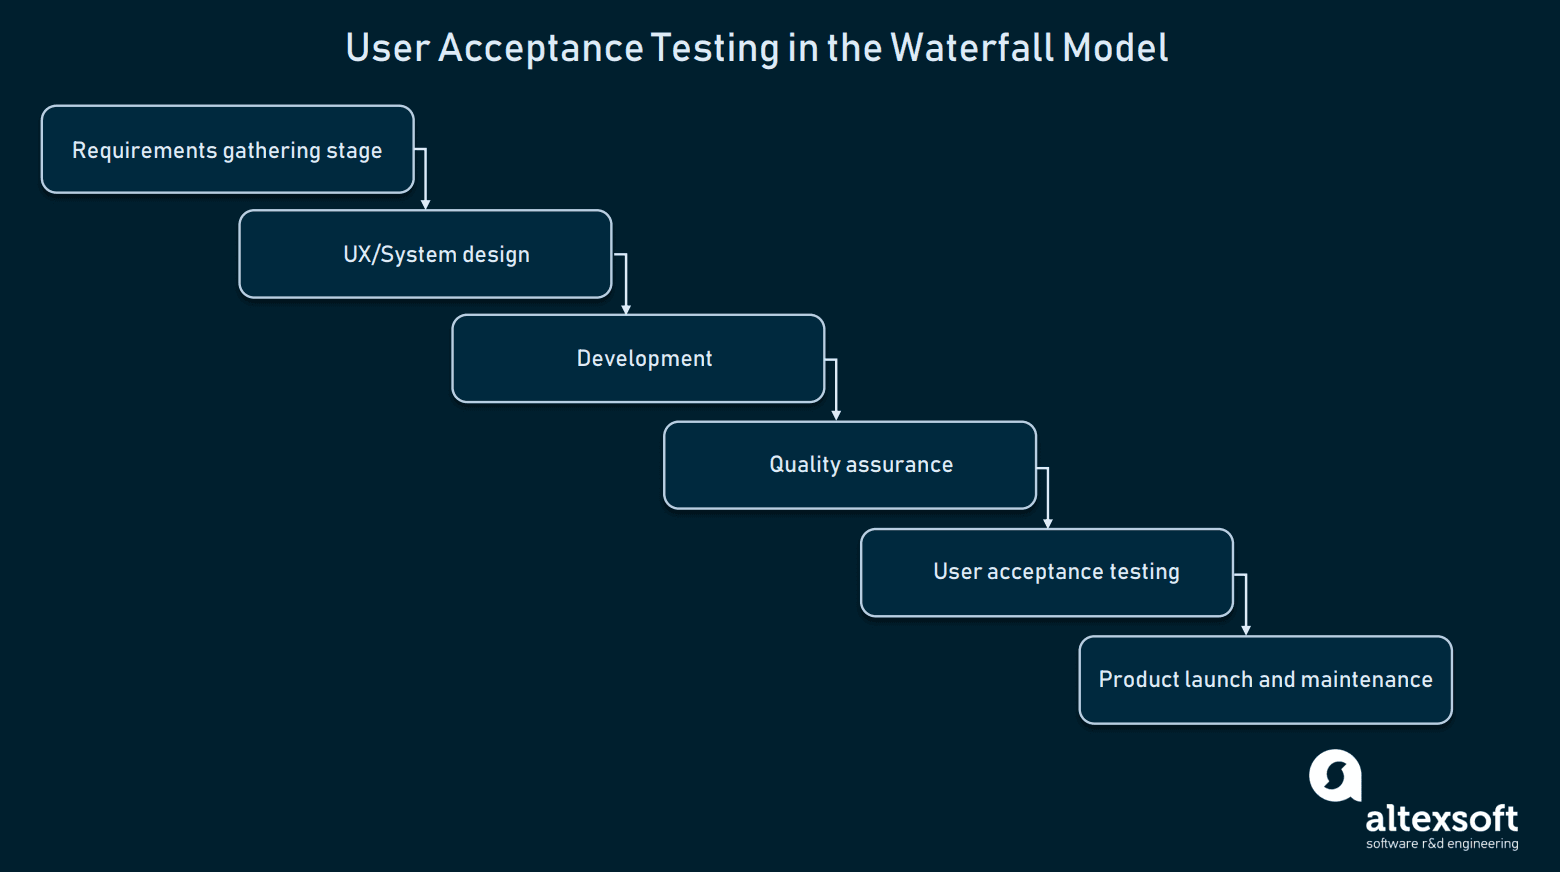 User Acceptance in the Watefall model